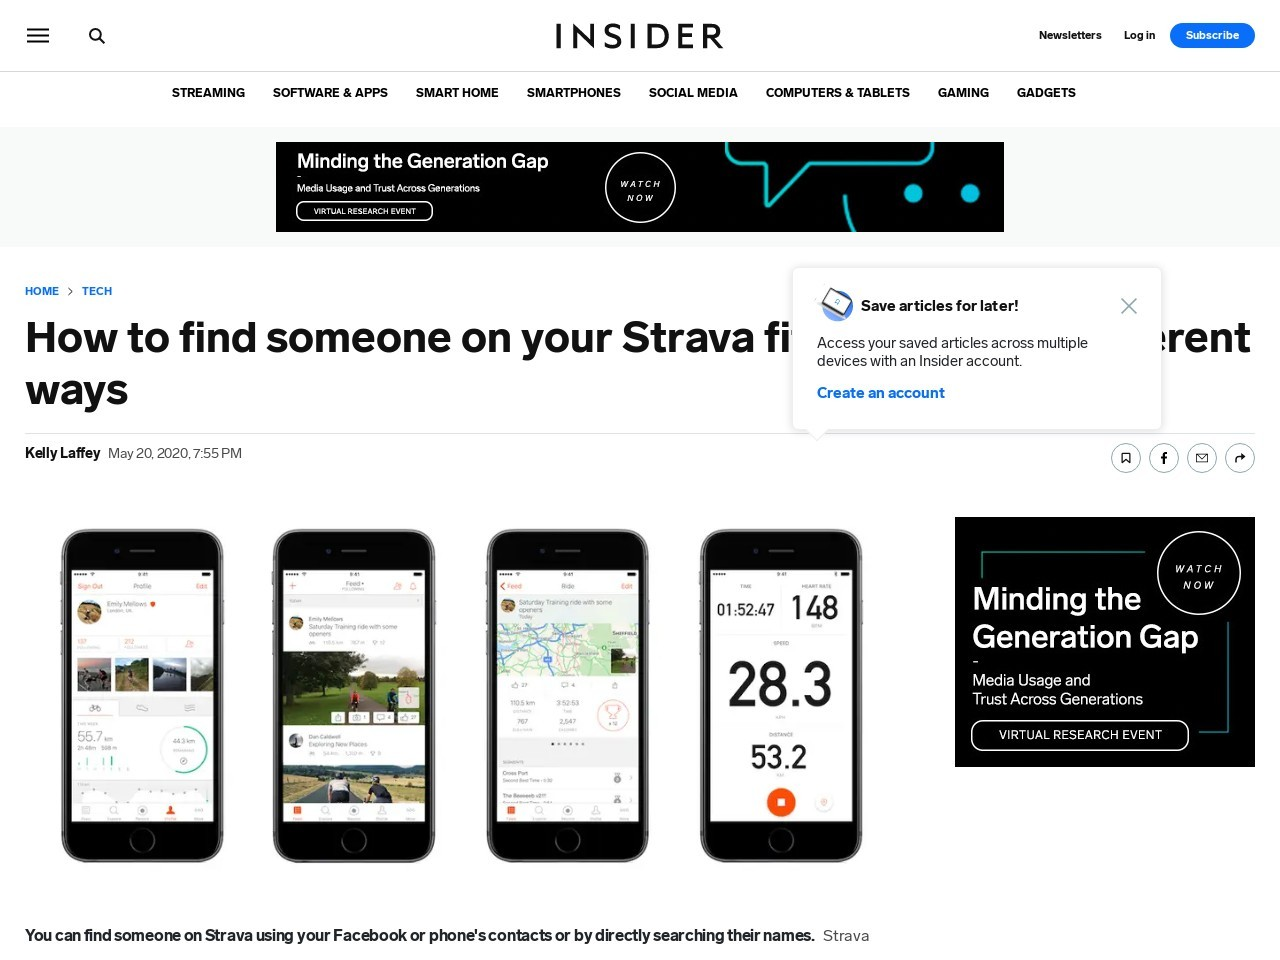 How to find someone on your Strava fitness app in 3 different ways